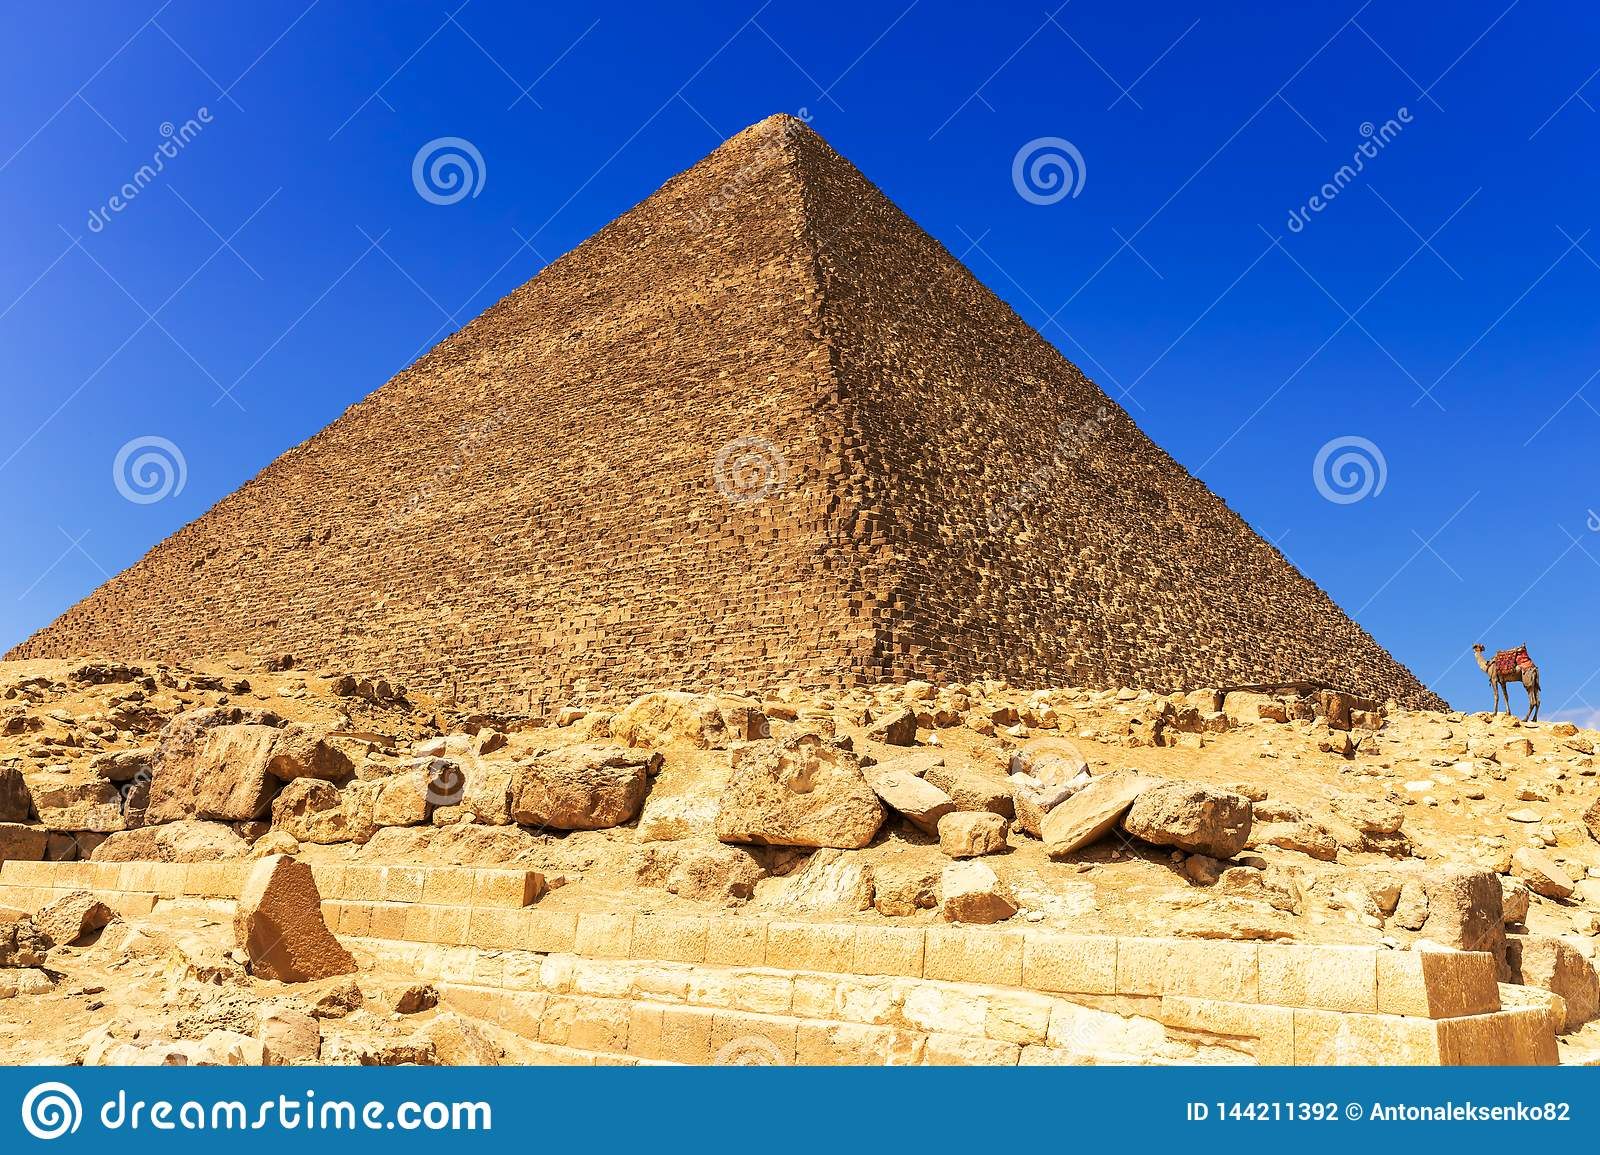 The Great Pyramid Of Cheops In Giza, Egypt Stock Photo